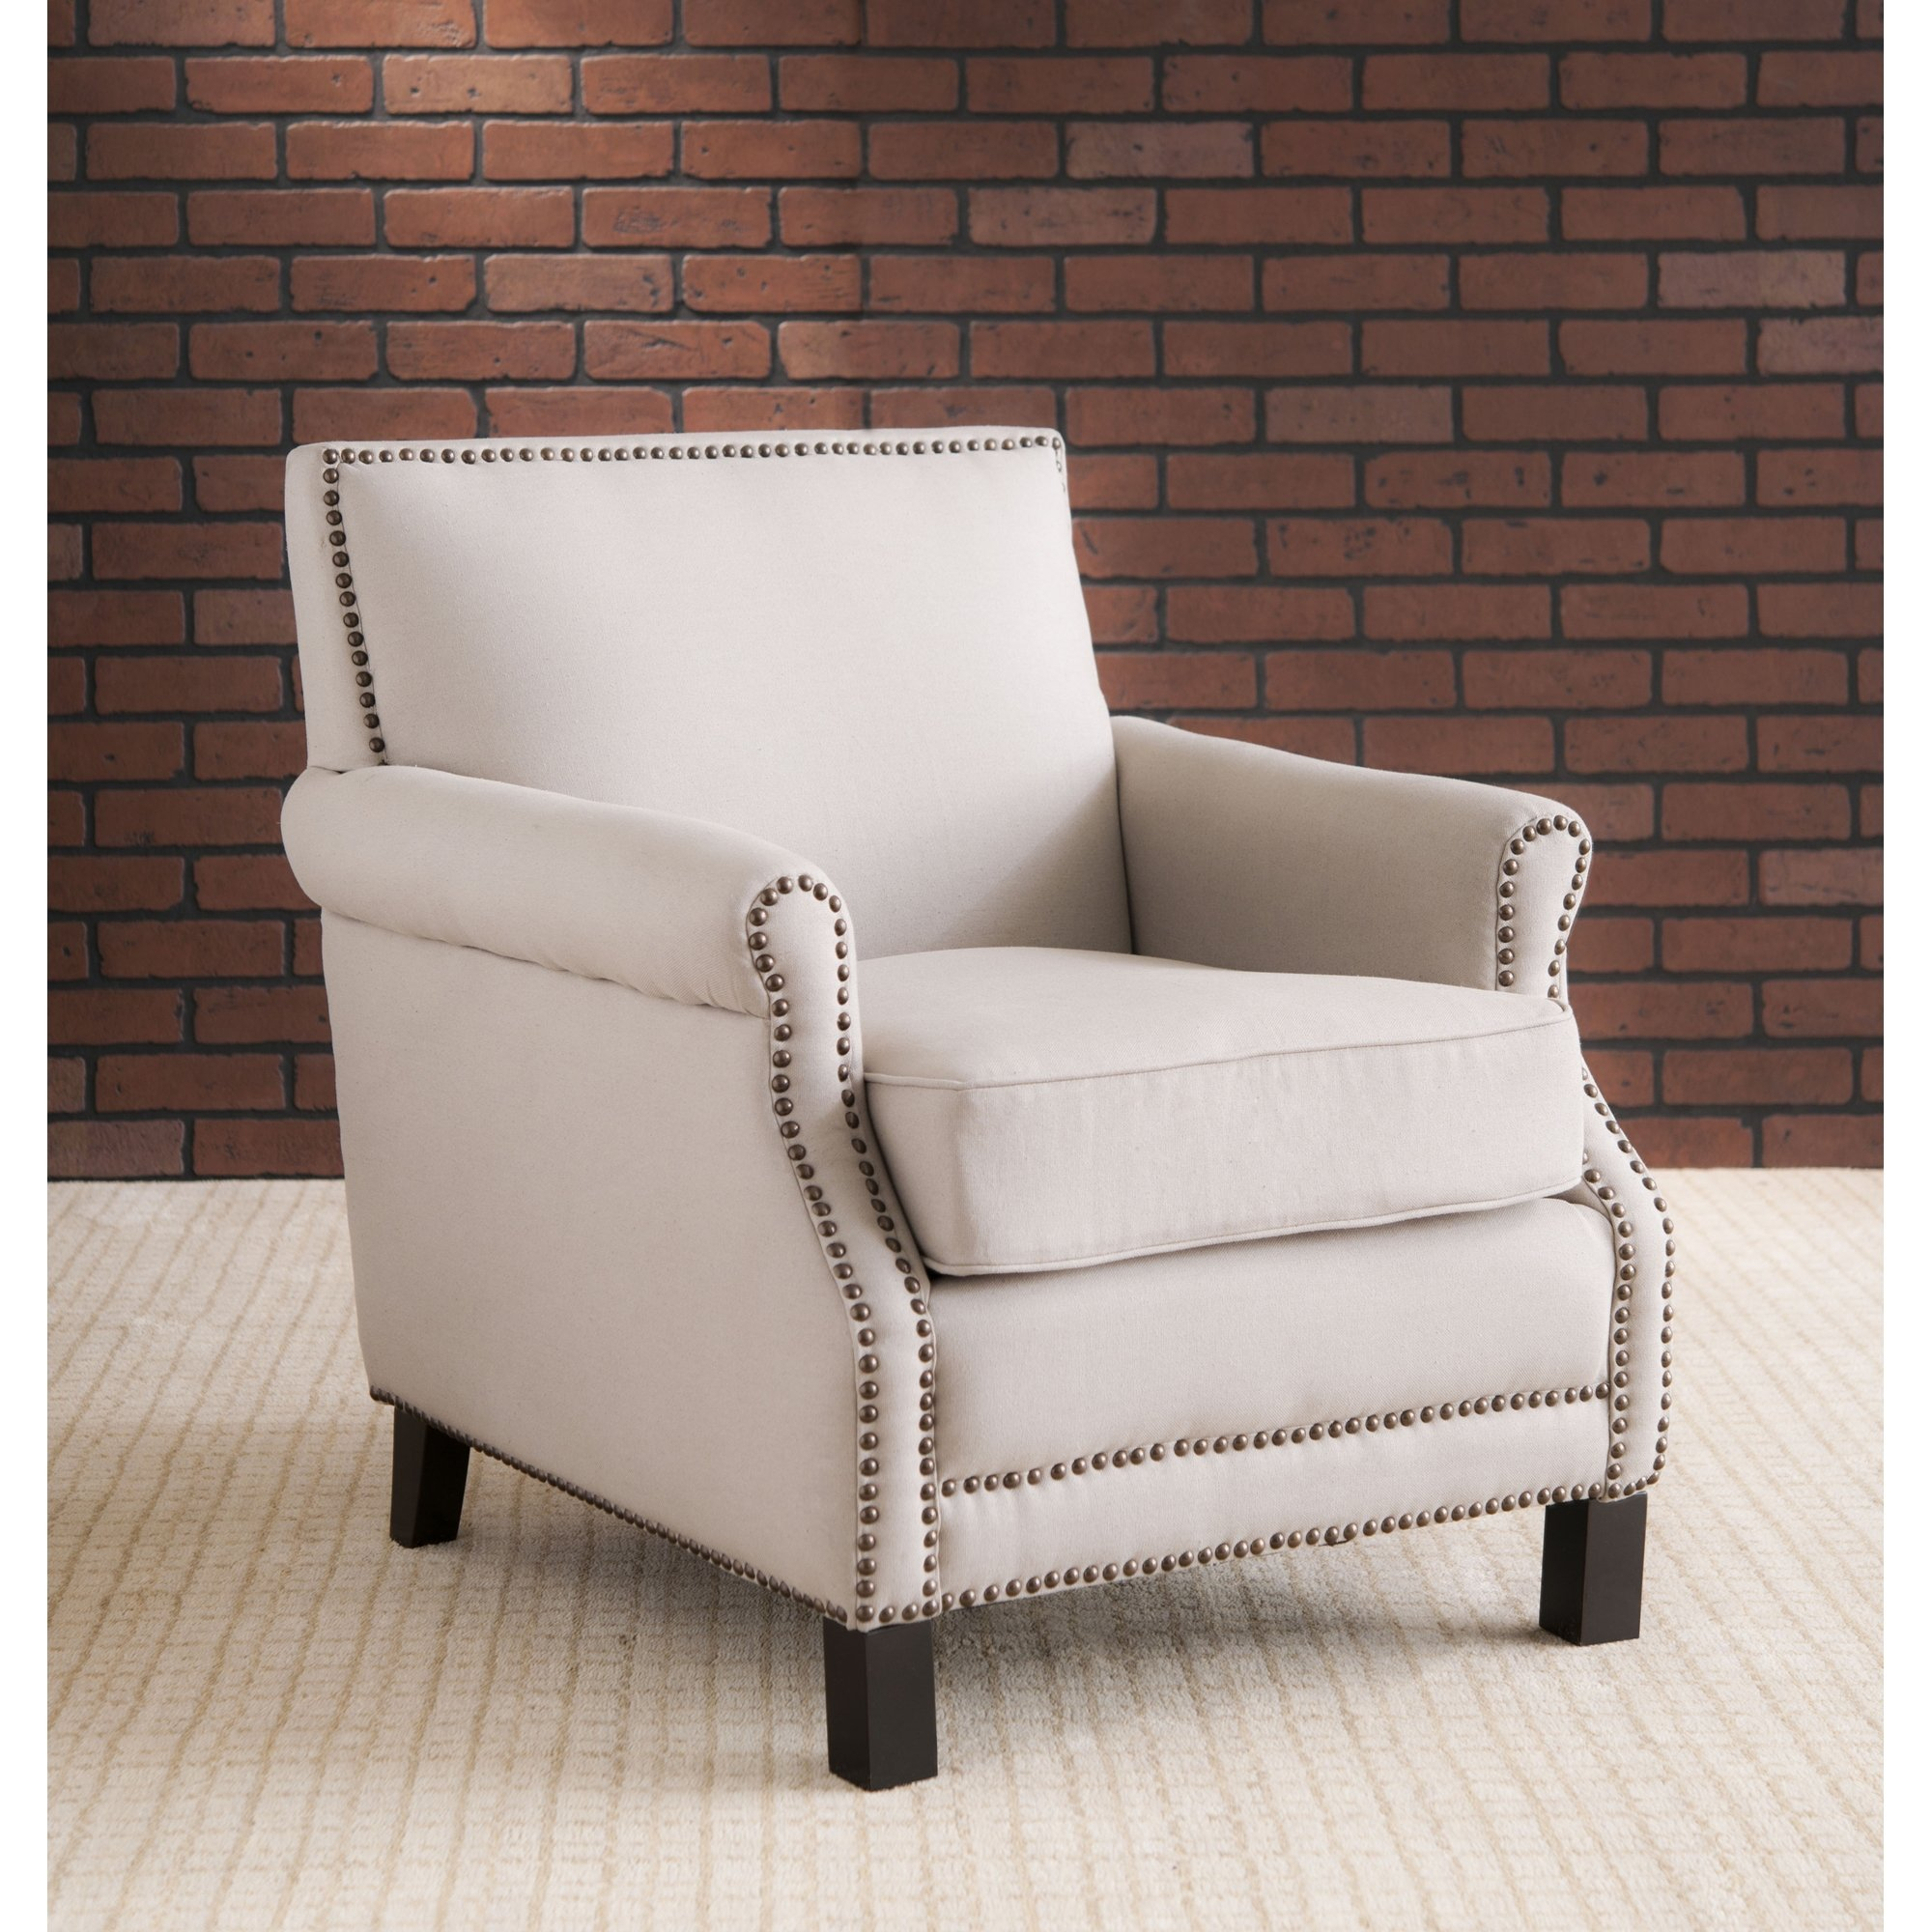 Shop Safavieh Mansfield Beige Club Chair – Free Shipping Today Pertaining To Mansfield Beige Linen Sofa Chairs (Image 22 of 25)